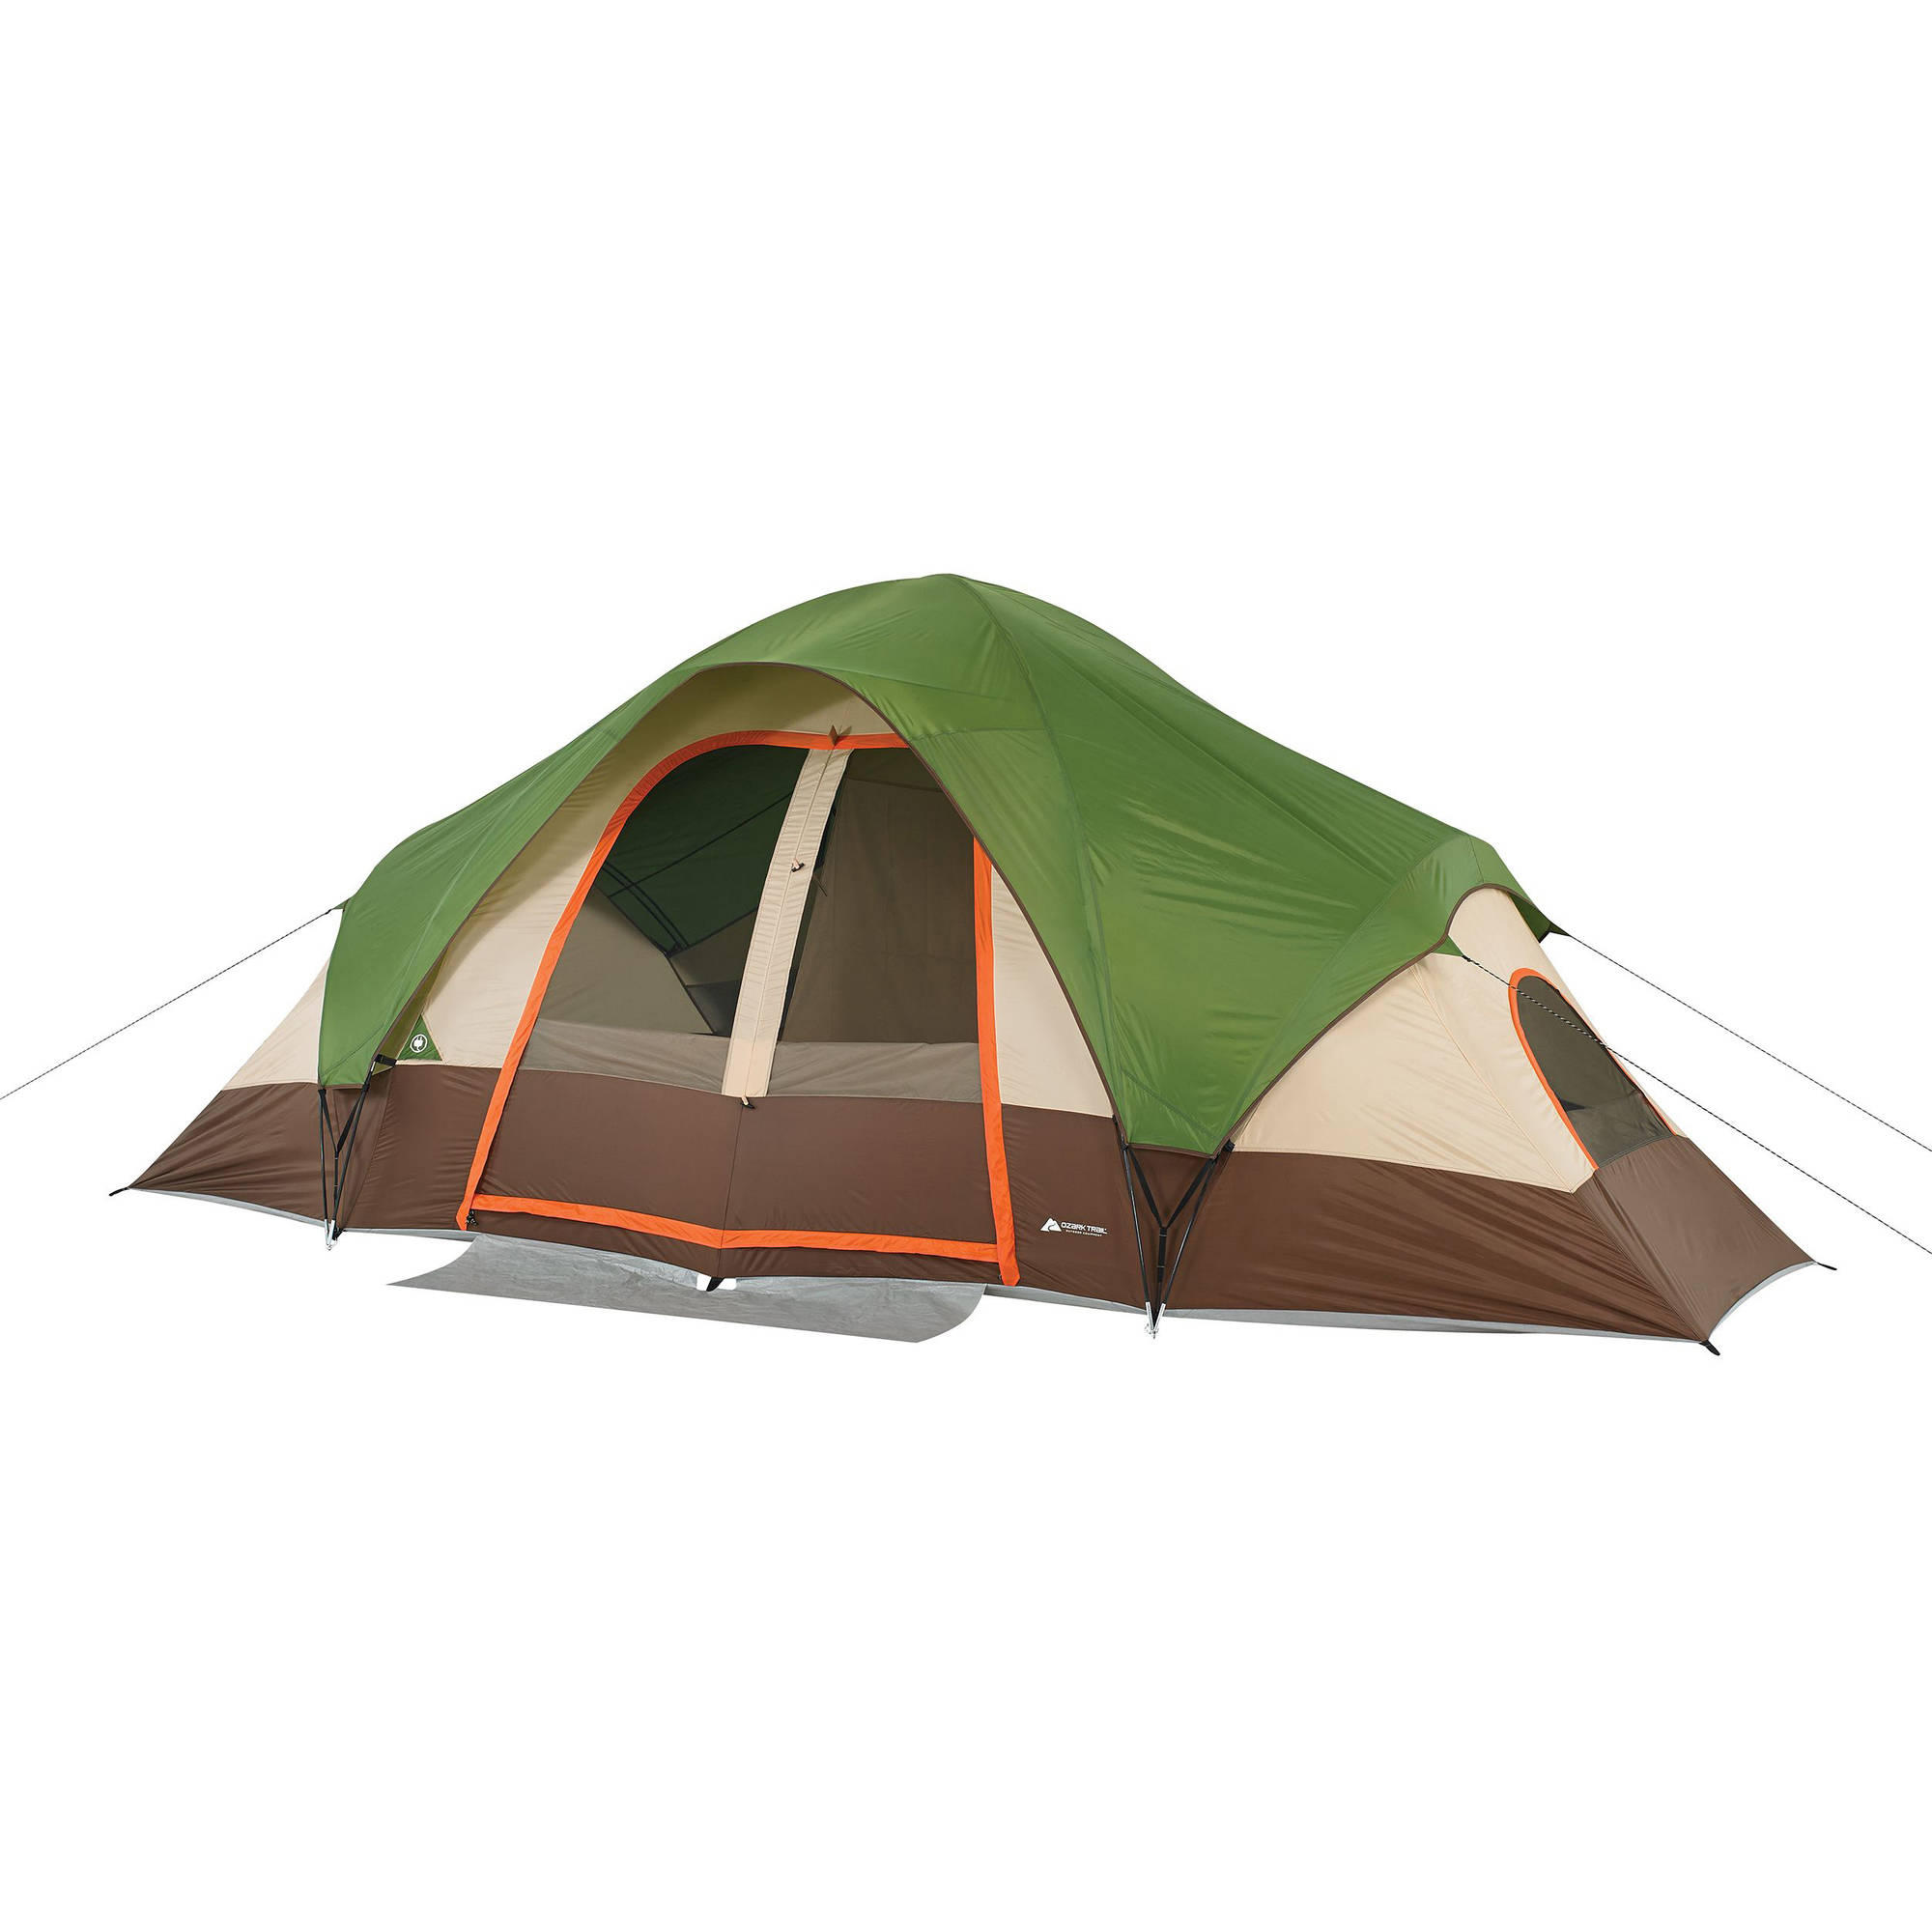 Ozark Trail 8-Person Dome Tent